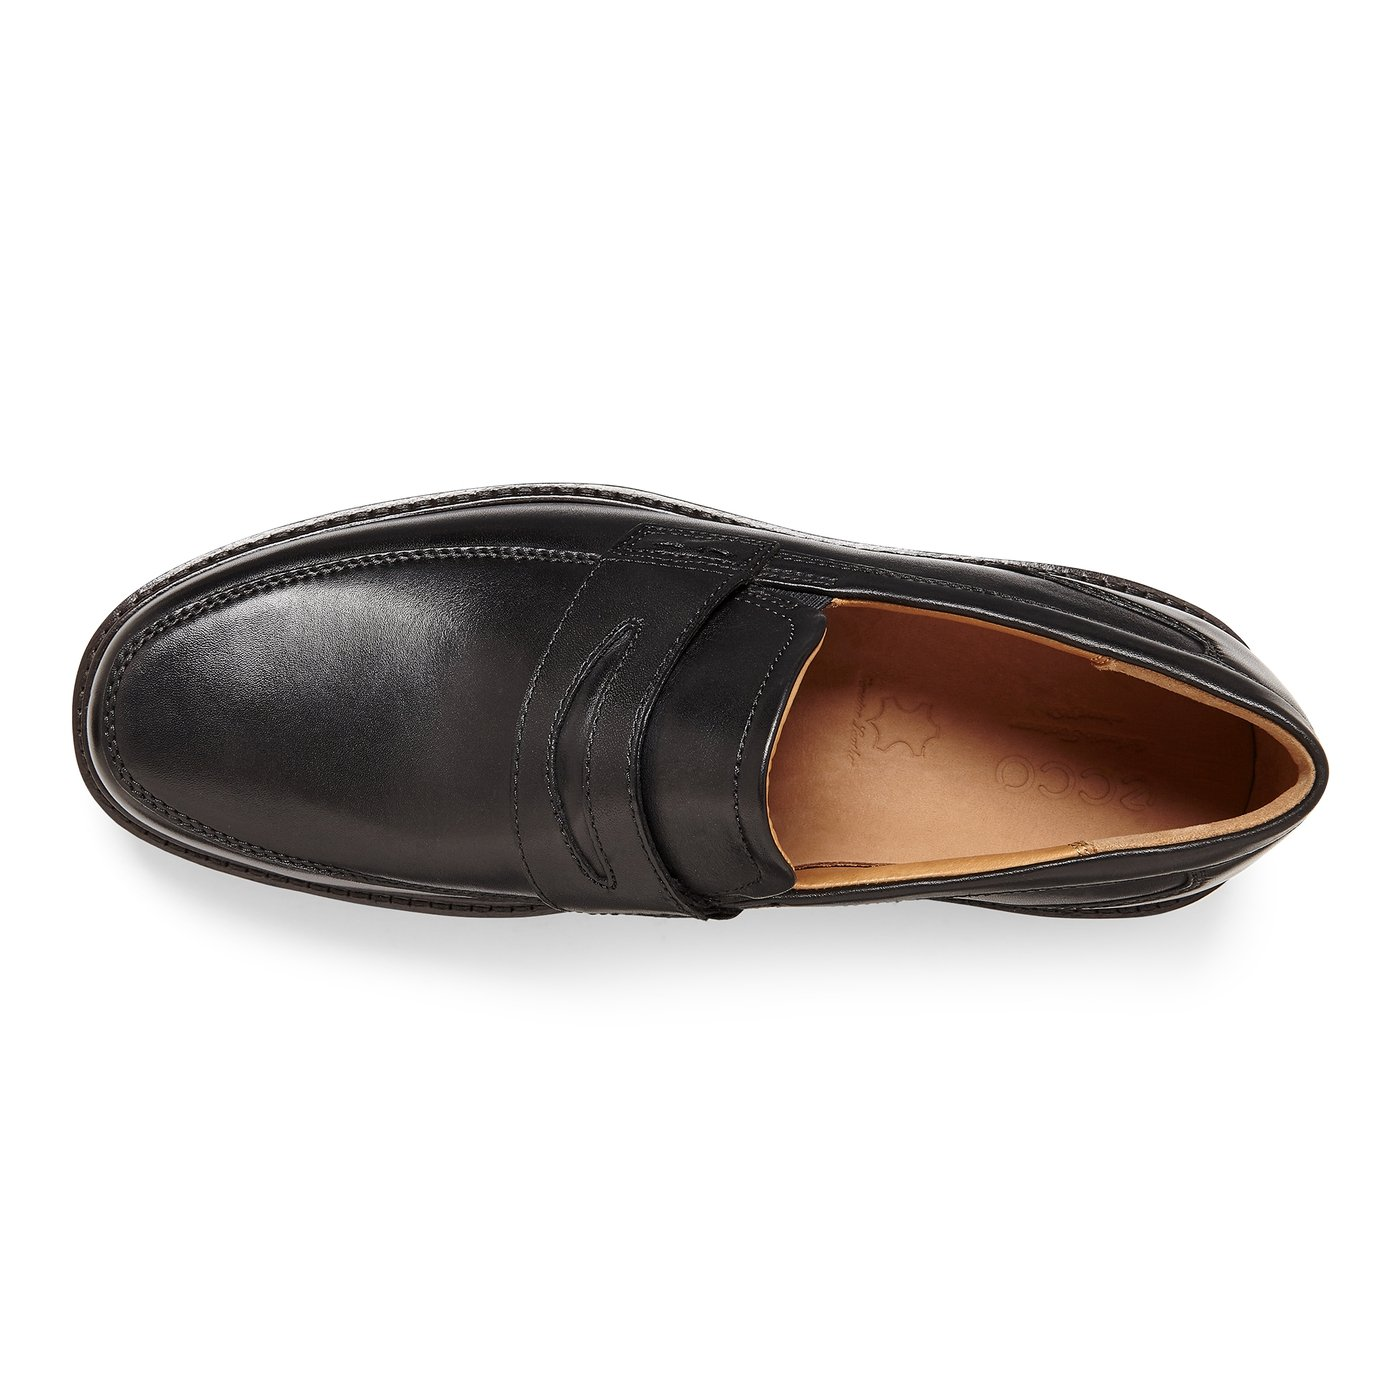 ECCO Holton Penny Loafer